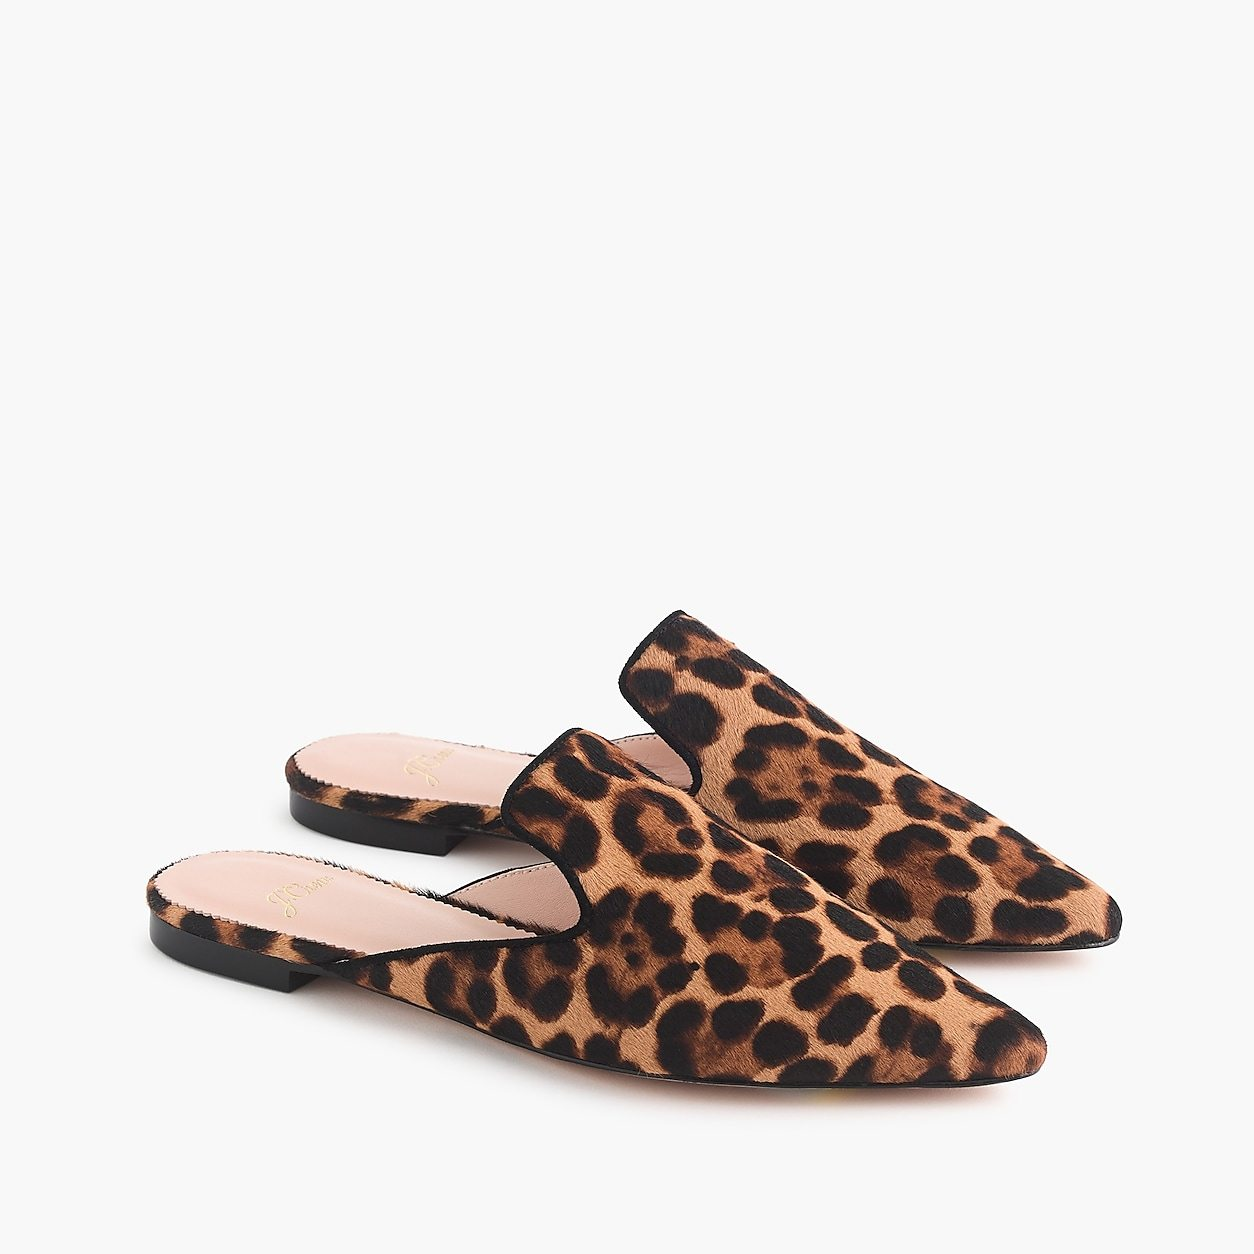 Pointed-toe slide in leopard calf hair